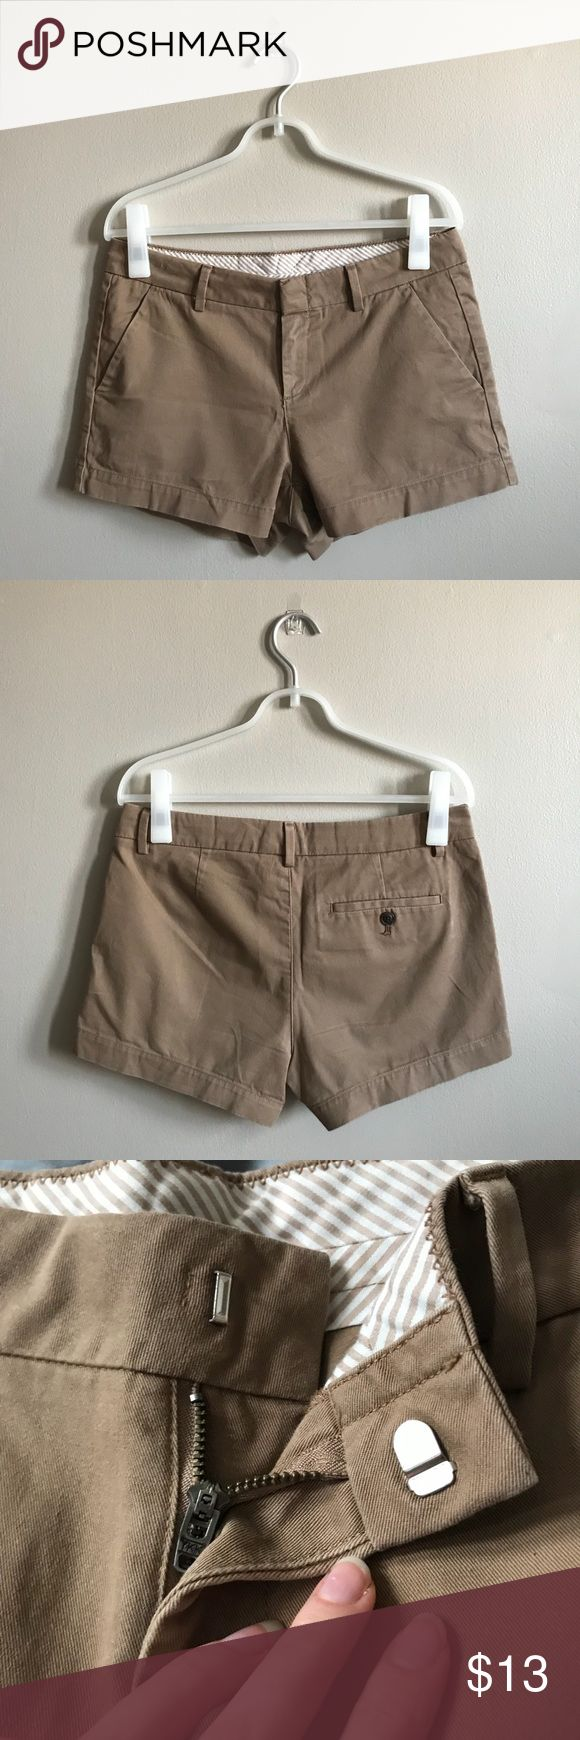 "Uniqlo Camel Micro Shorts ☀️ Uniqlo Micro Shorts (Camel). Cute light brown/khaki shorts from Uniqlo. Zipper and hook closure. Side pockets and one back pocket with button closure (extra button included). Wrinkles can easily be straightened out with a little steam. Size 4 (runs large) Hips: 32"" Inseam: 3""  • Accepts reasonable offers • Ships within 1-2 days of purchase • Offers 10% bundling discount on all items Uniqlo Shorts"